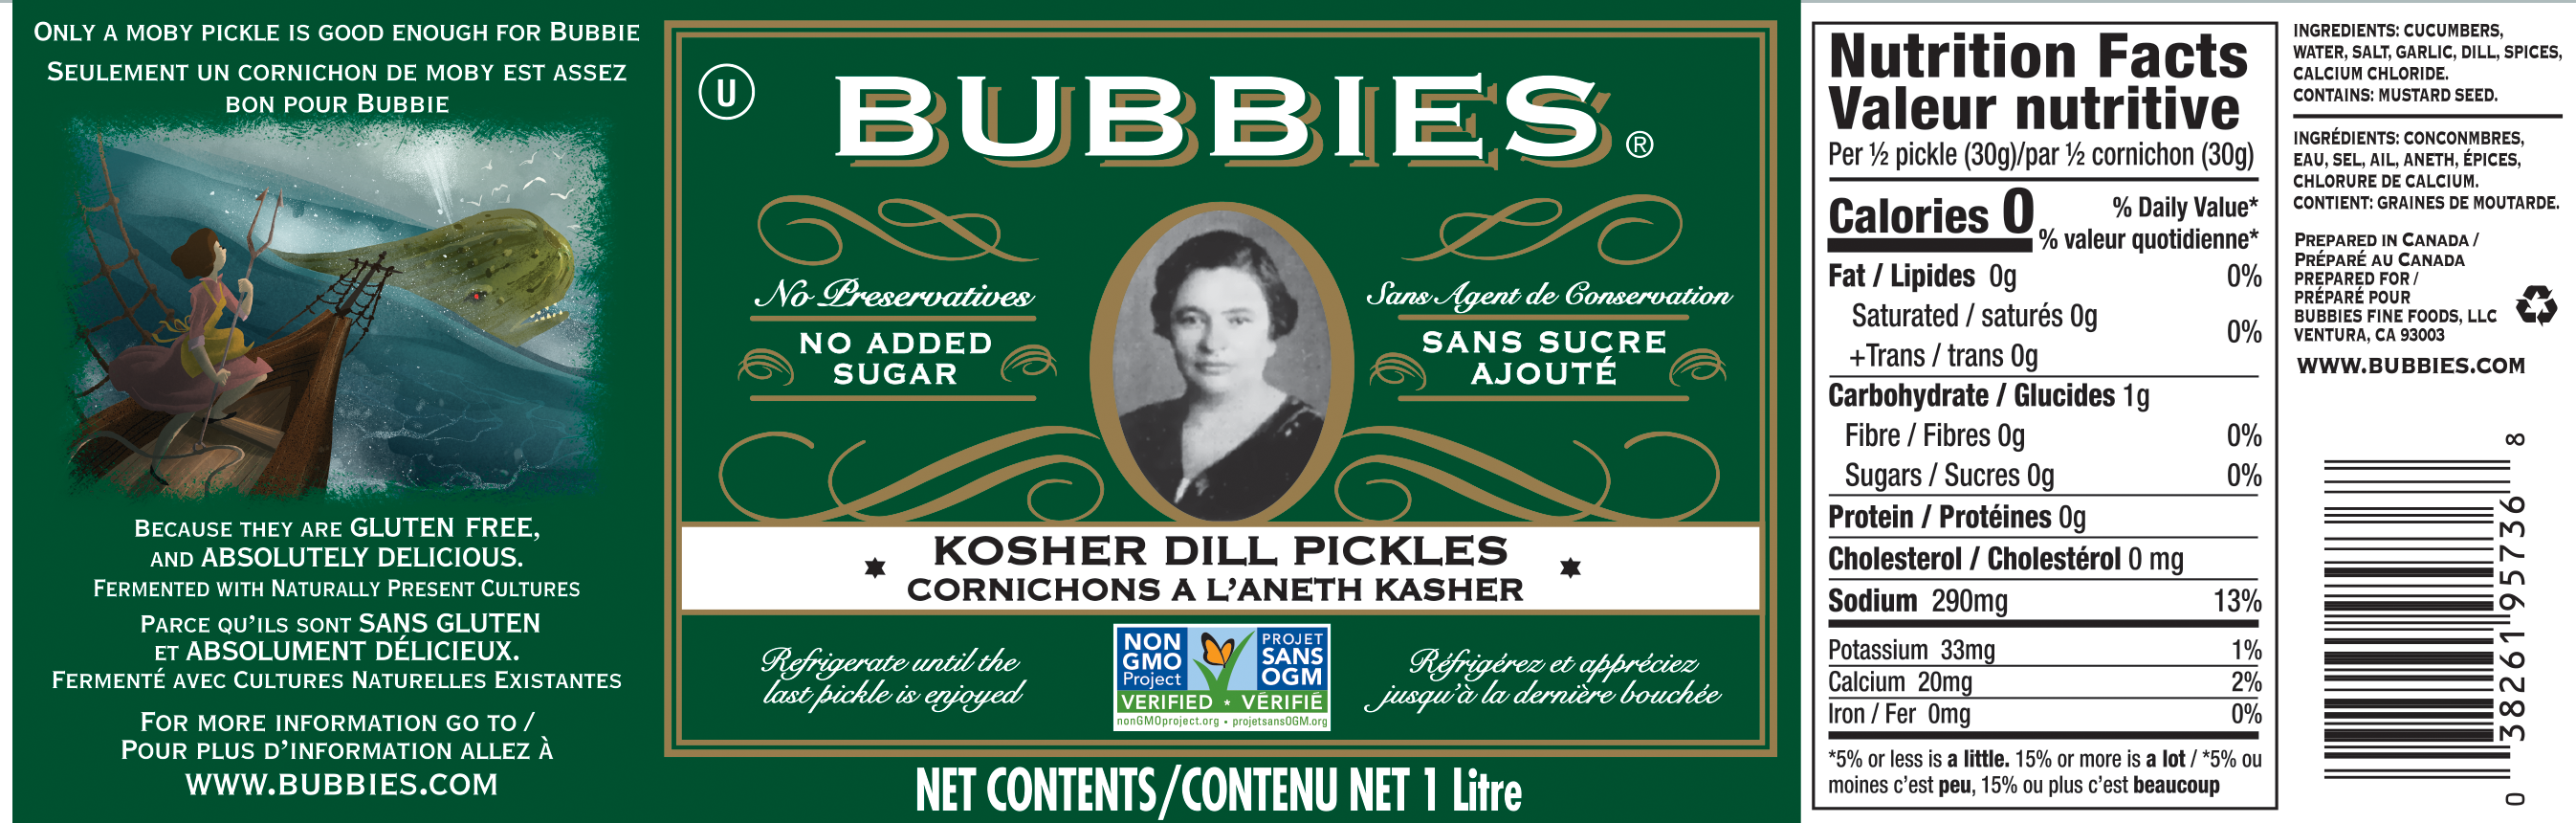 Bubbies Kosher Dill Pickles Label Canada / Bubbies Cornichons a l'aneth kasher Canada